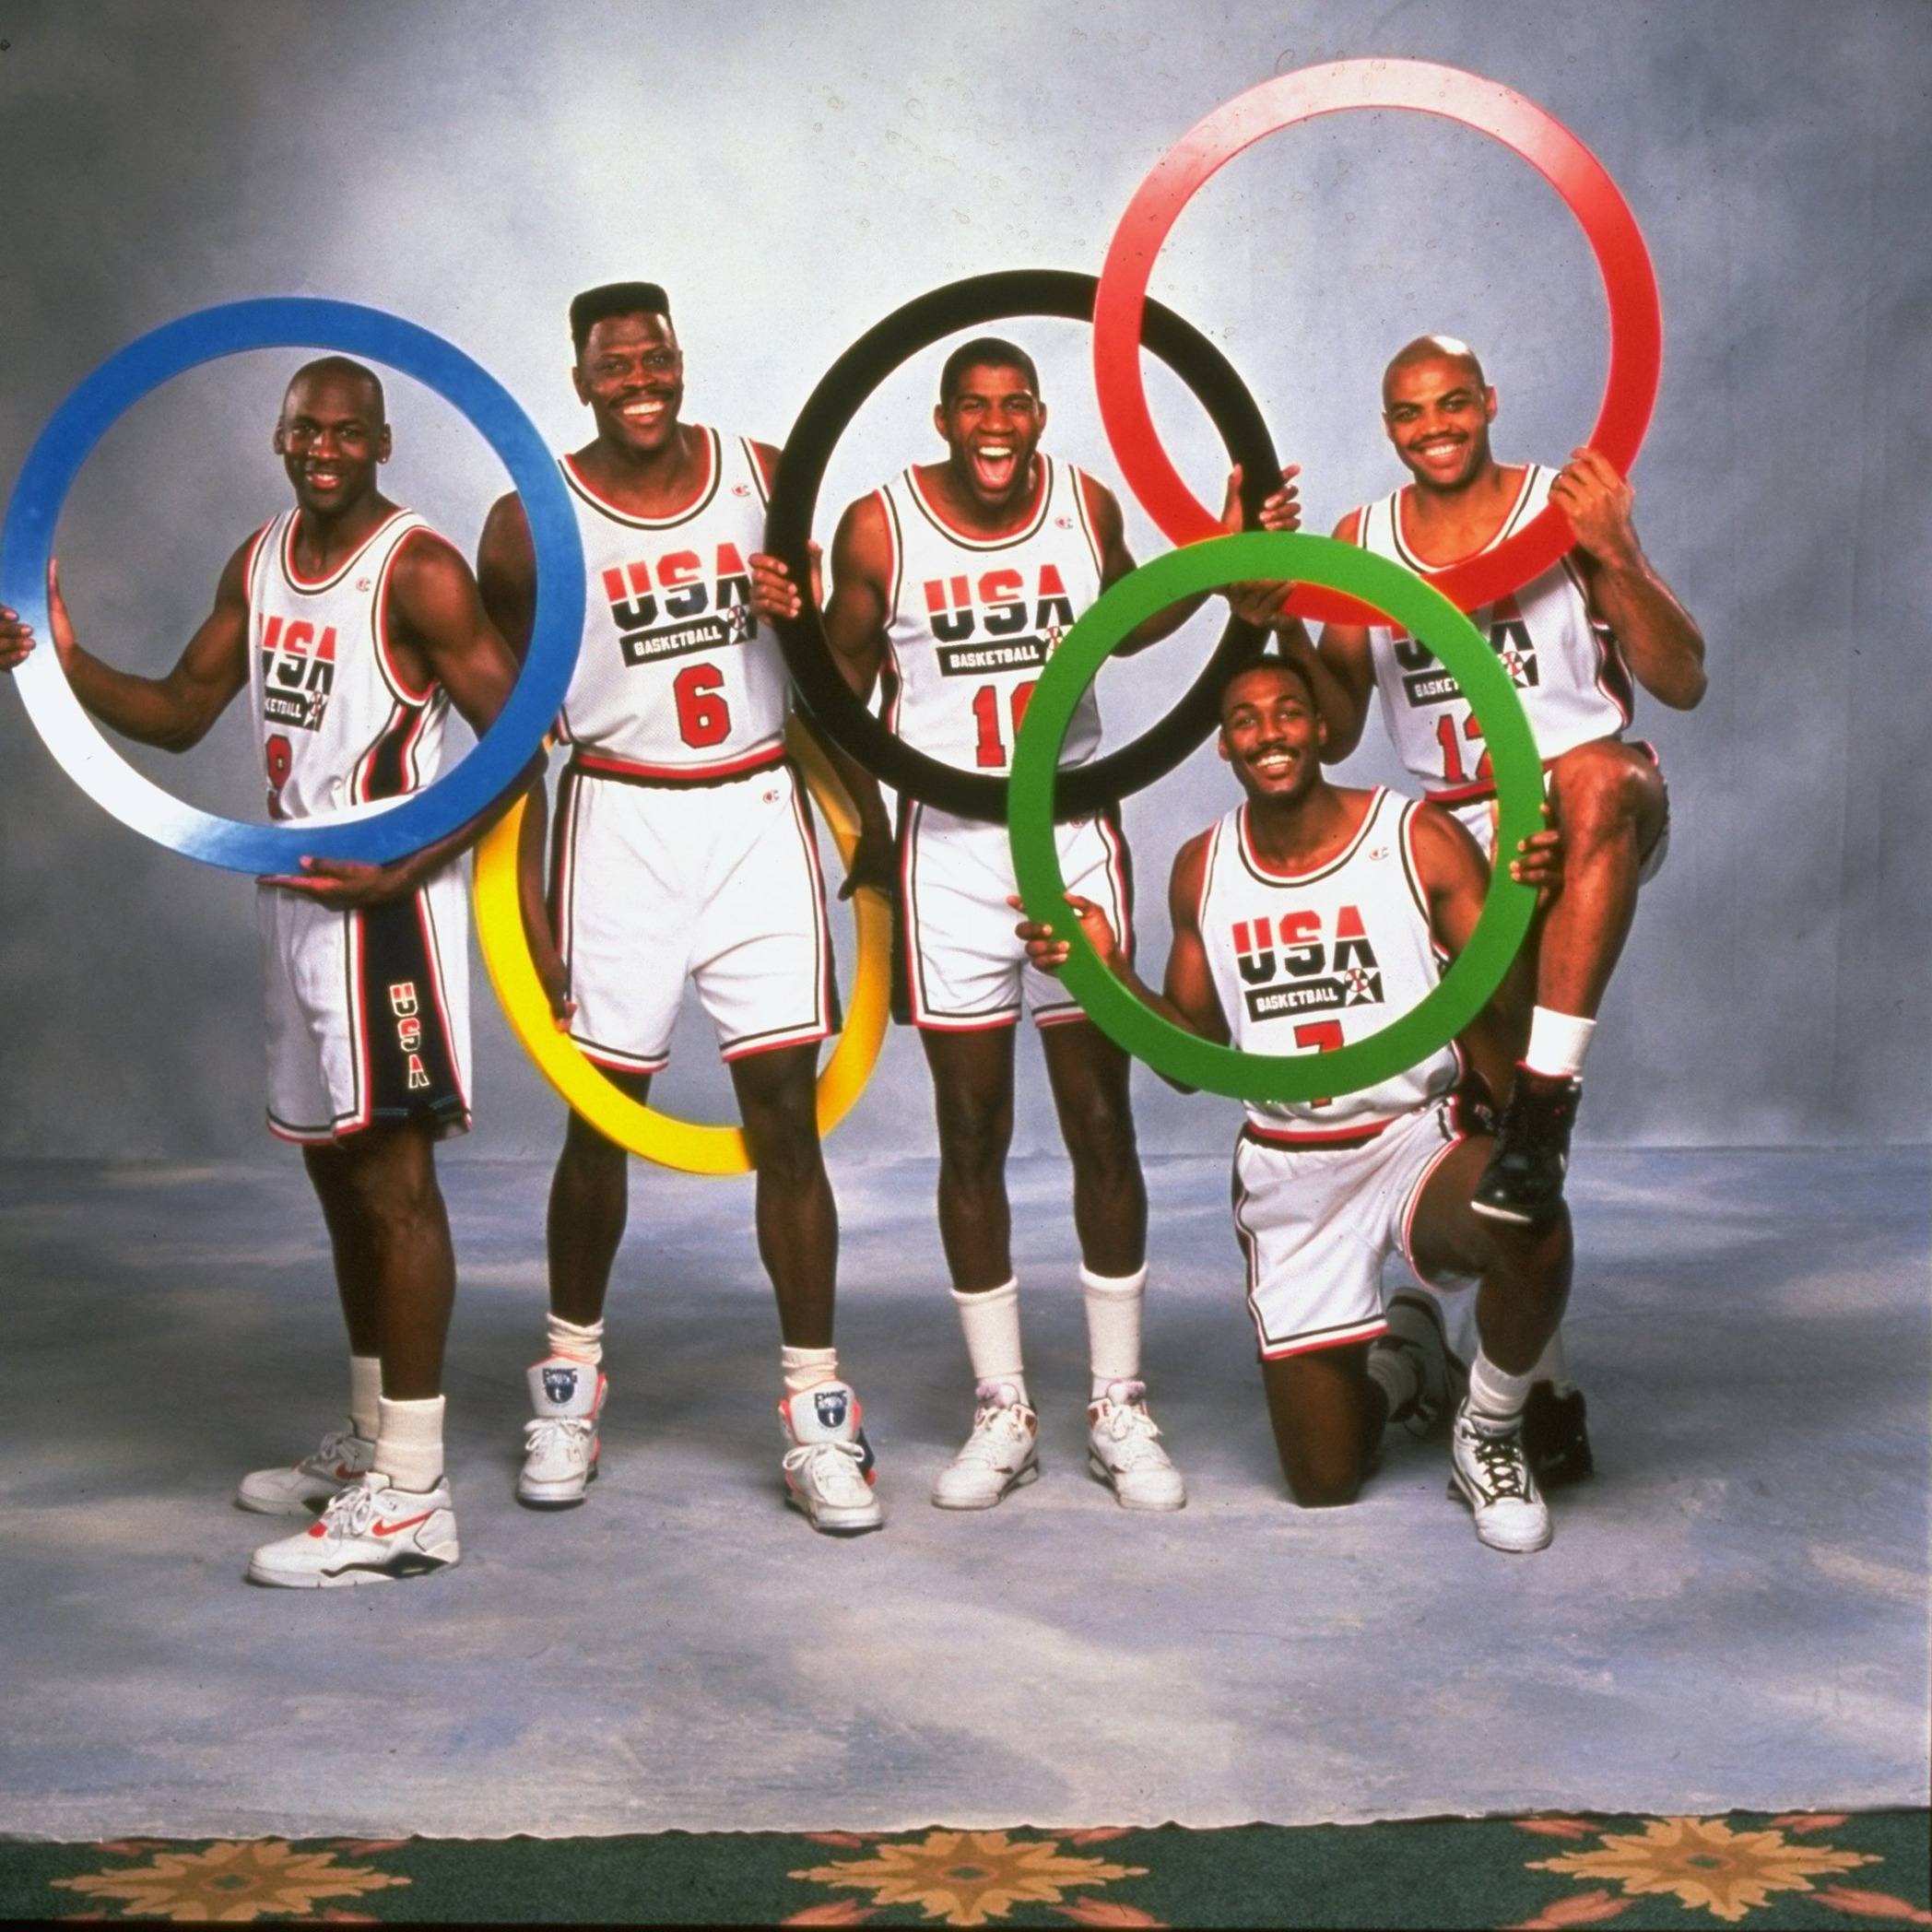 UNITED STATES - FEBRUARY 08: Basketball: Summer Games Preview, Portrait of Team USA (L-R) Michael Jordan (9), Patrick Ewing (6), Magic Johnson (10), Karl Malone (7), and Charles Barkley (12) with olympic rings, Charlotte, NC 2/8/1991 (Photo by Theo Westenberger/Sports Illustrated/Getty Images) (SetNumber: X40993)